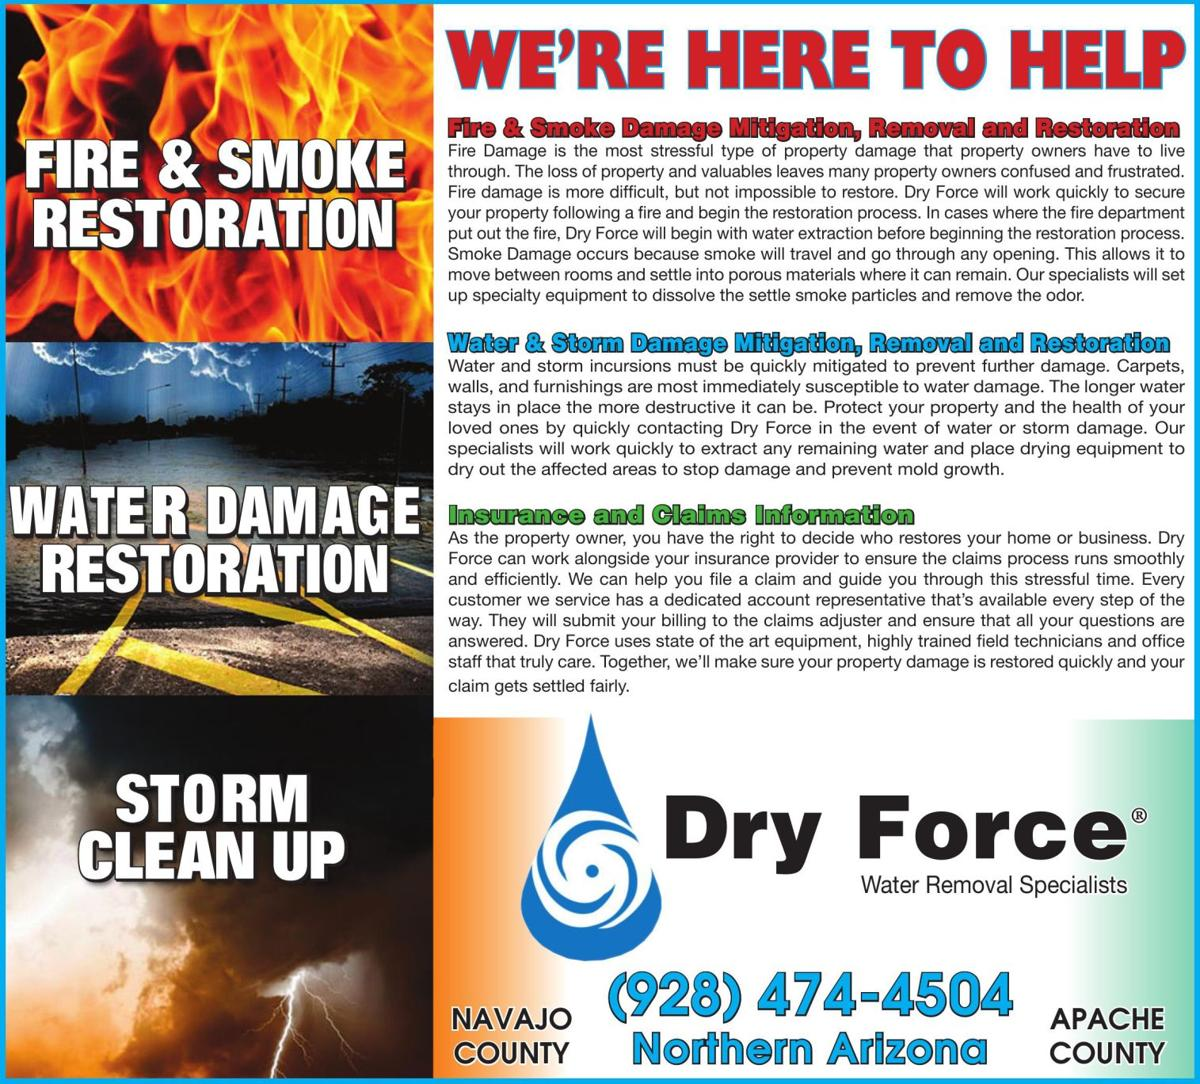 Dry Force - WE'RE HERE TO HELP